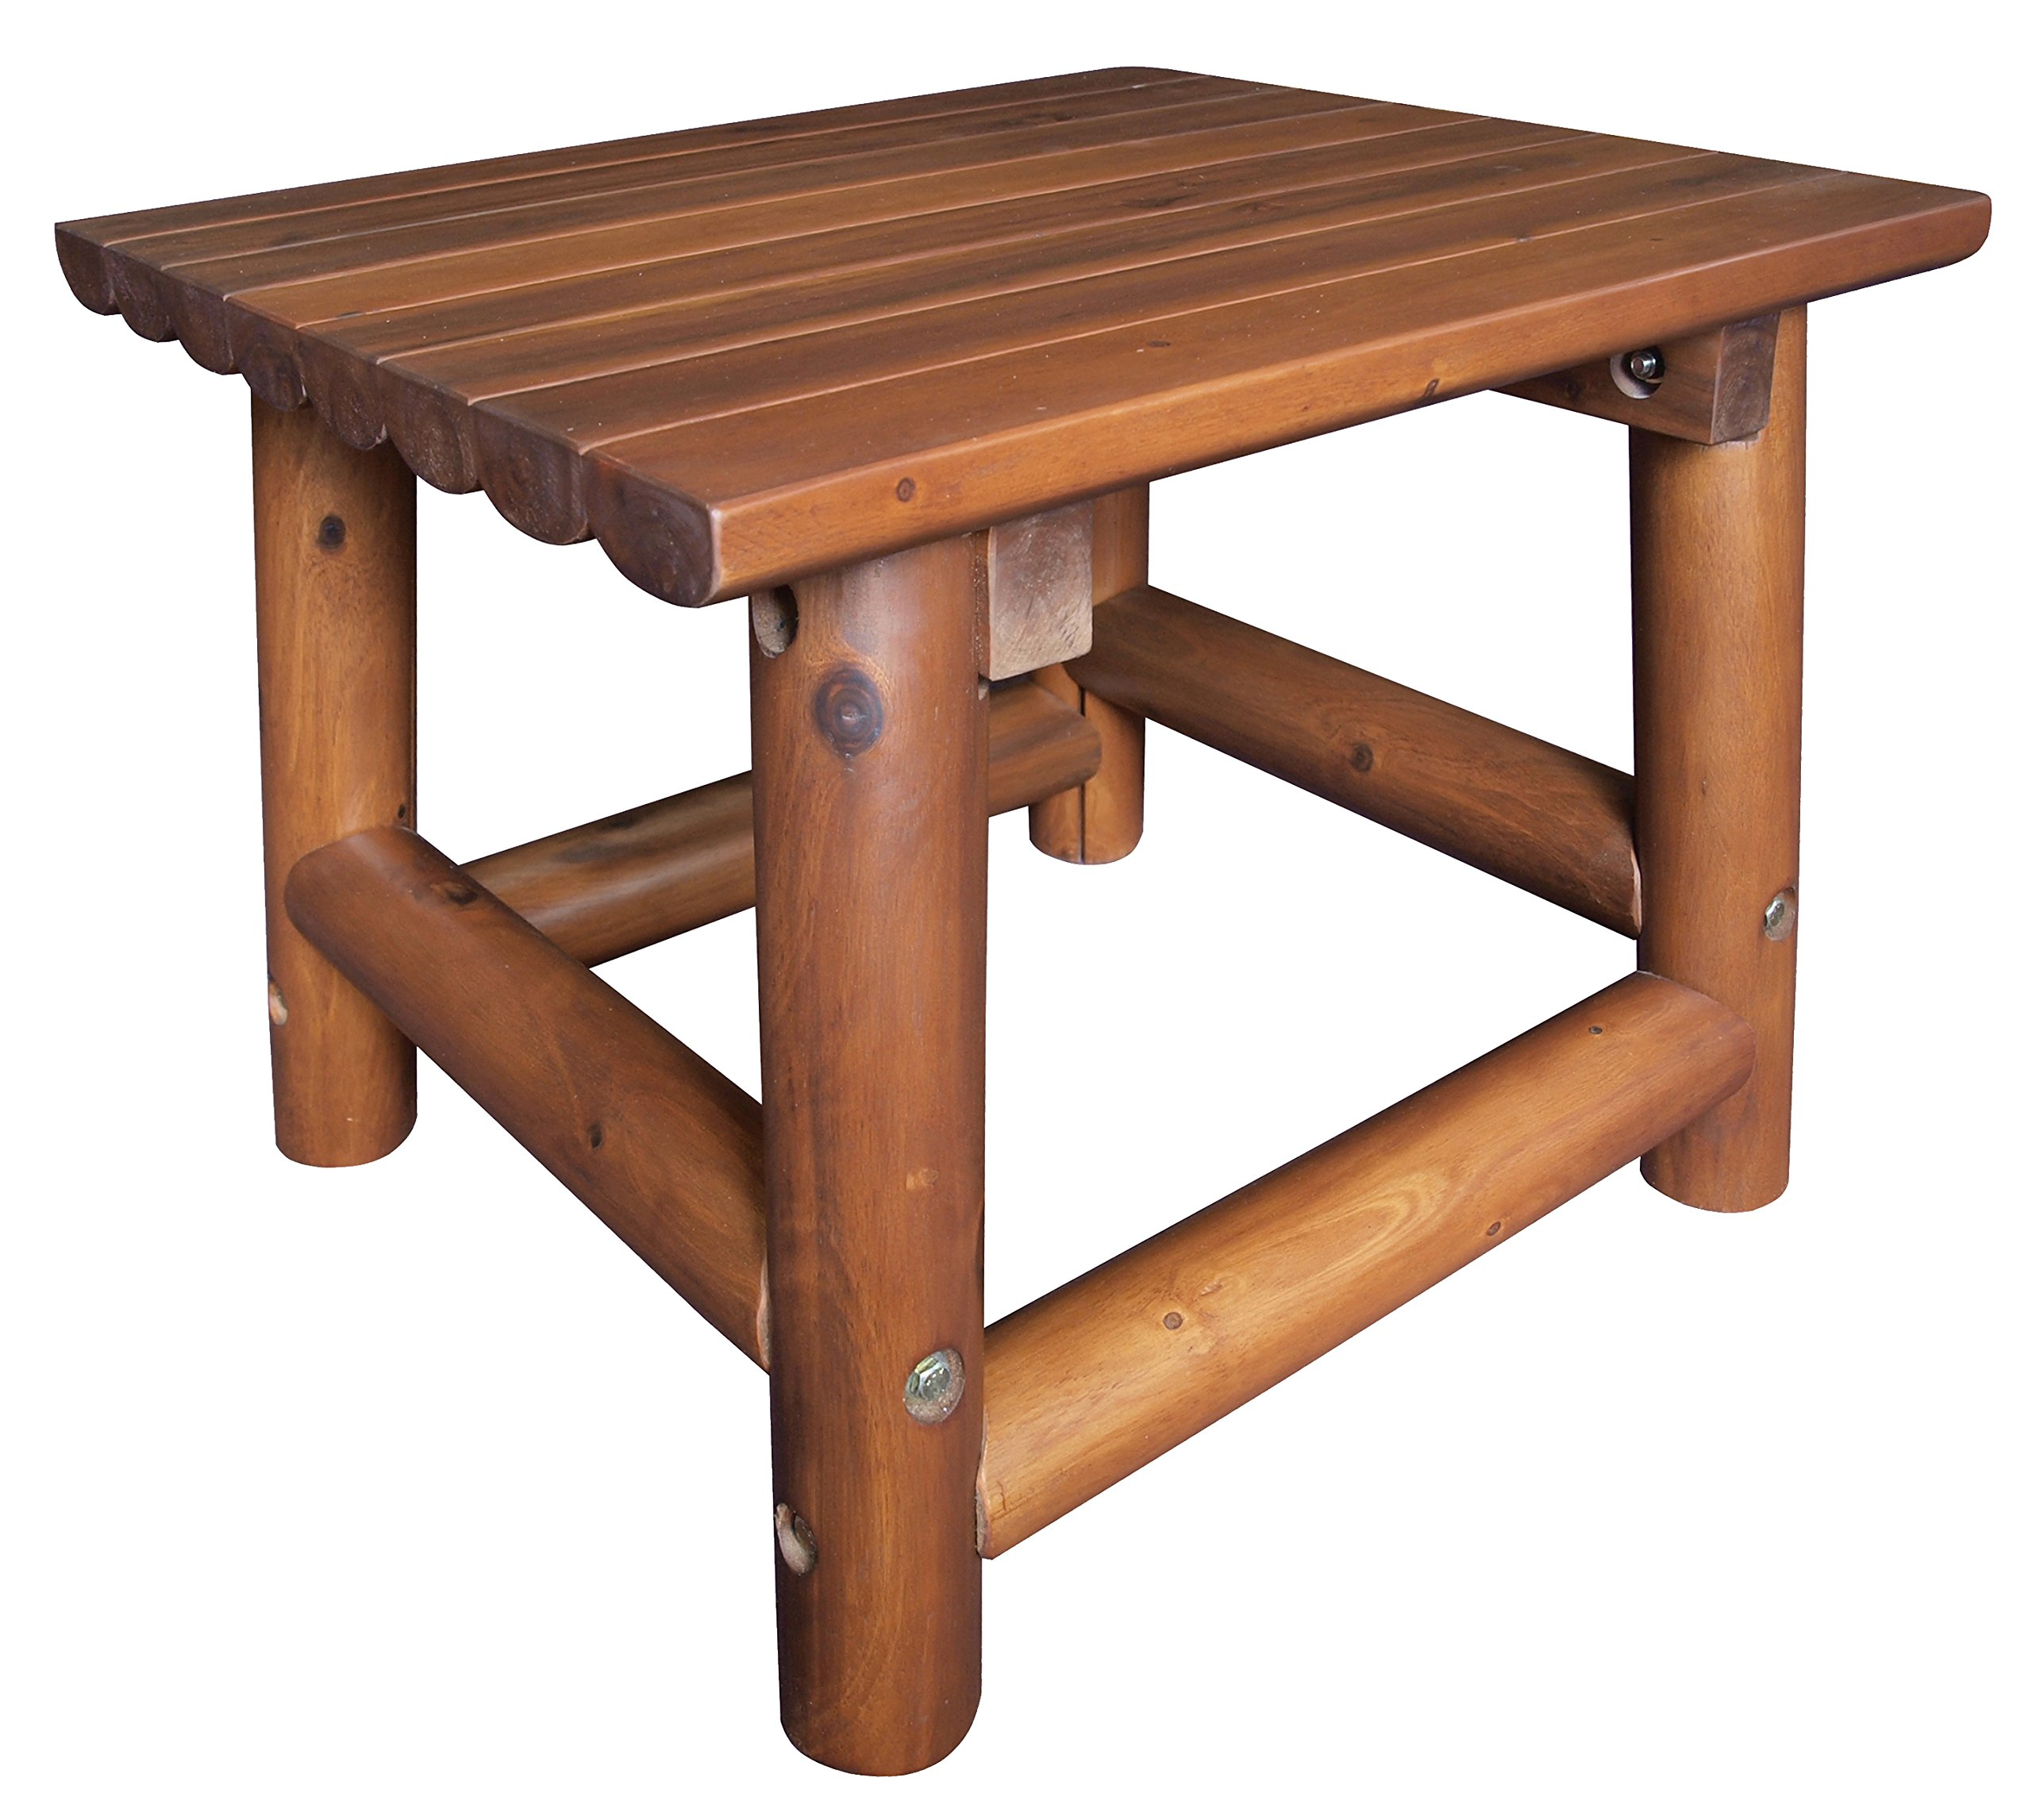 Leigh Country TX 36010 Amberlog End Table Outdoor/Patio Furniture - Made of hardwood acacia Sealed with a clear coat Some assembly required - patio-tables, patio-furniture, patio - 81yDuSCGMtL -